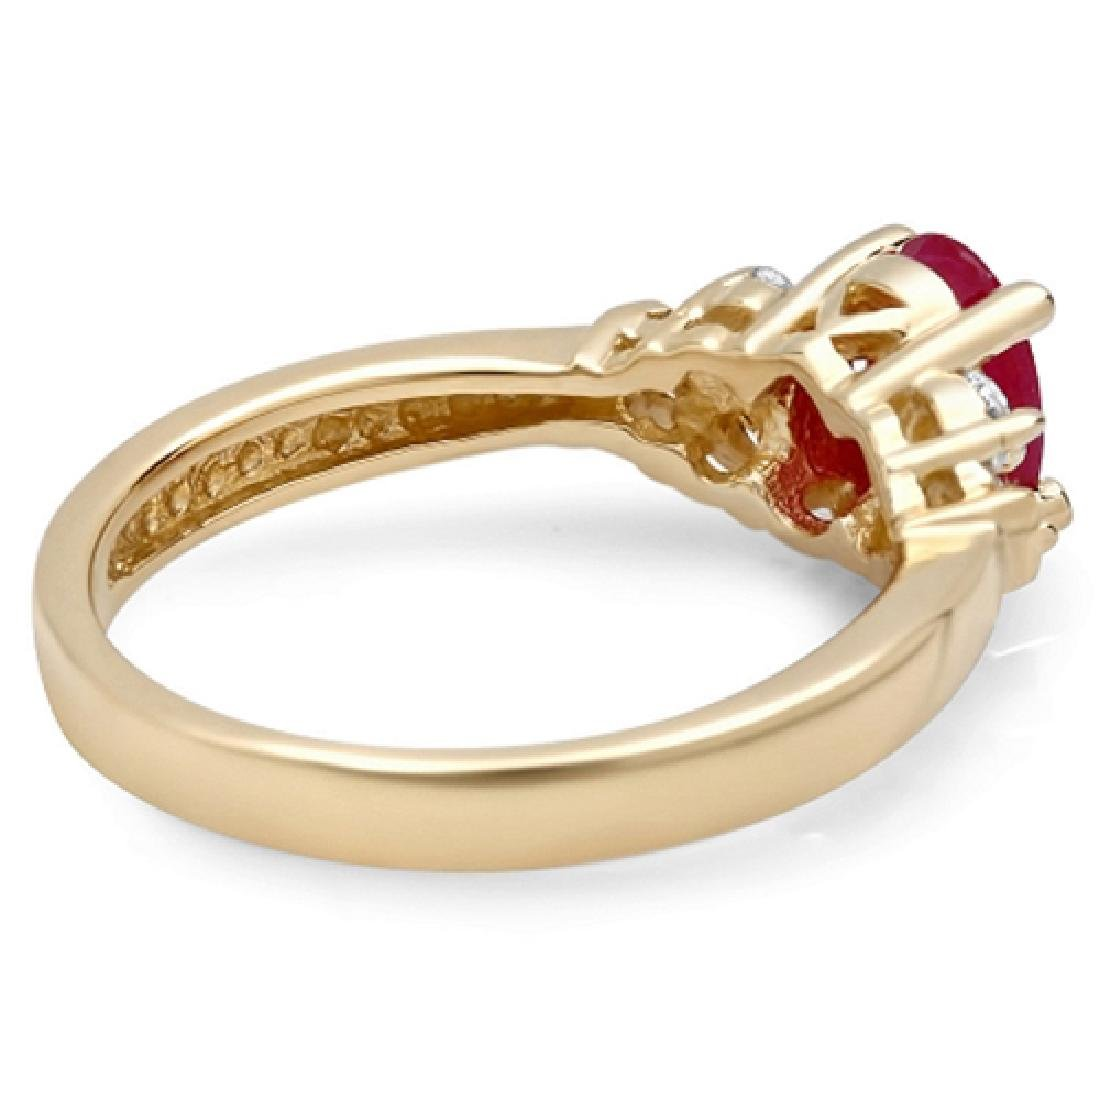 1.22 Carat Natural Ruby 18K Solid Yellow Gold Diamond - 2